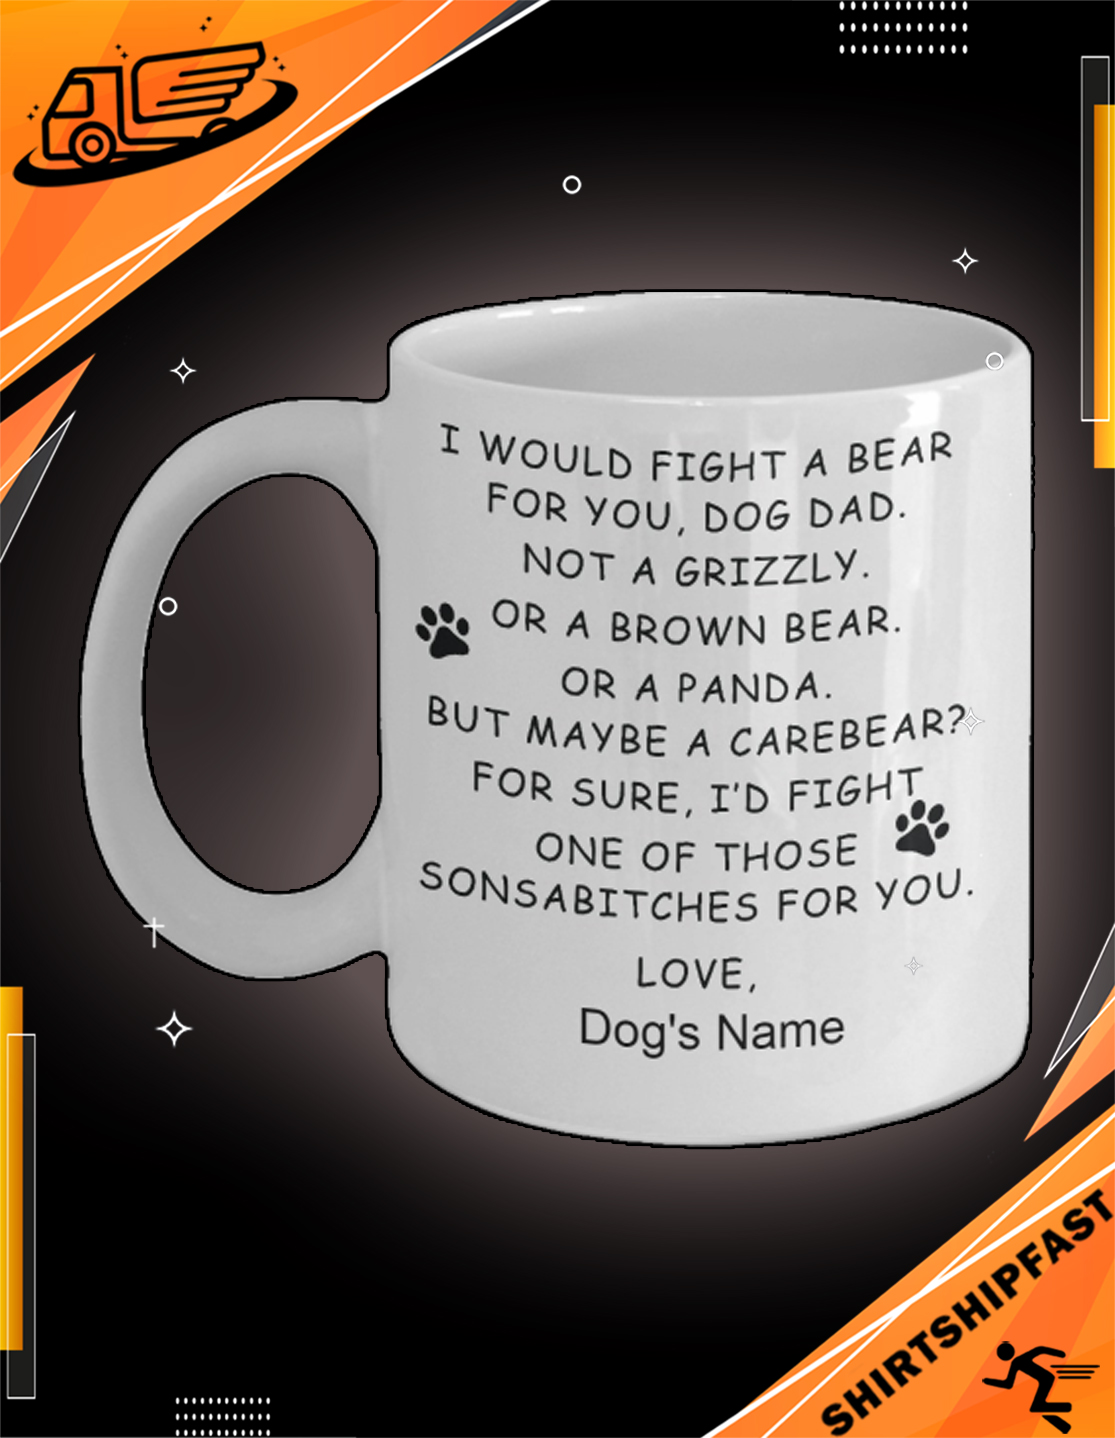 I would fight a bear for you dog dad custom name mug - Picture 2